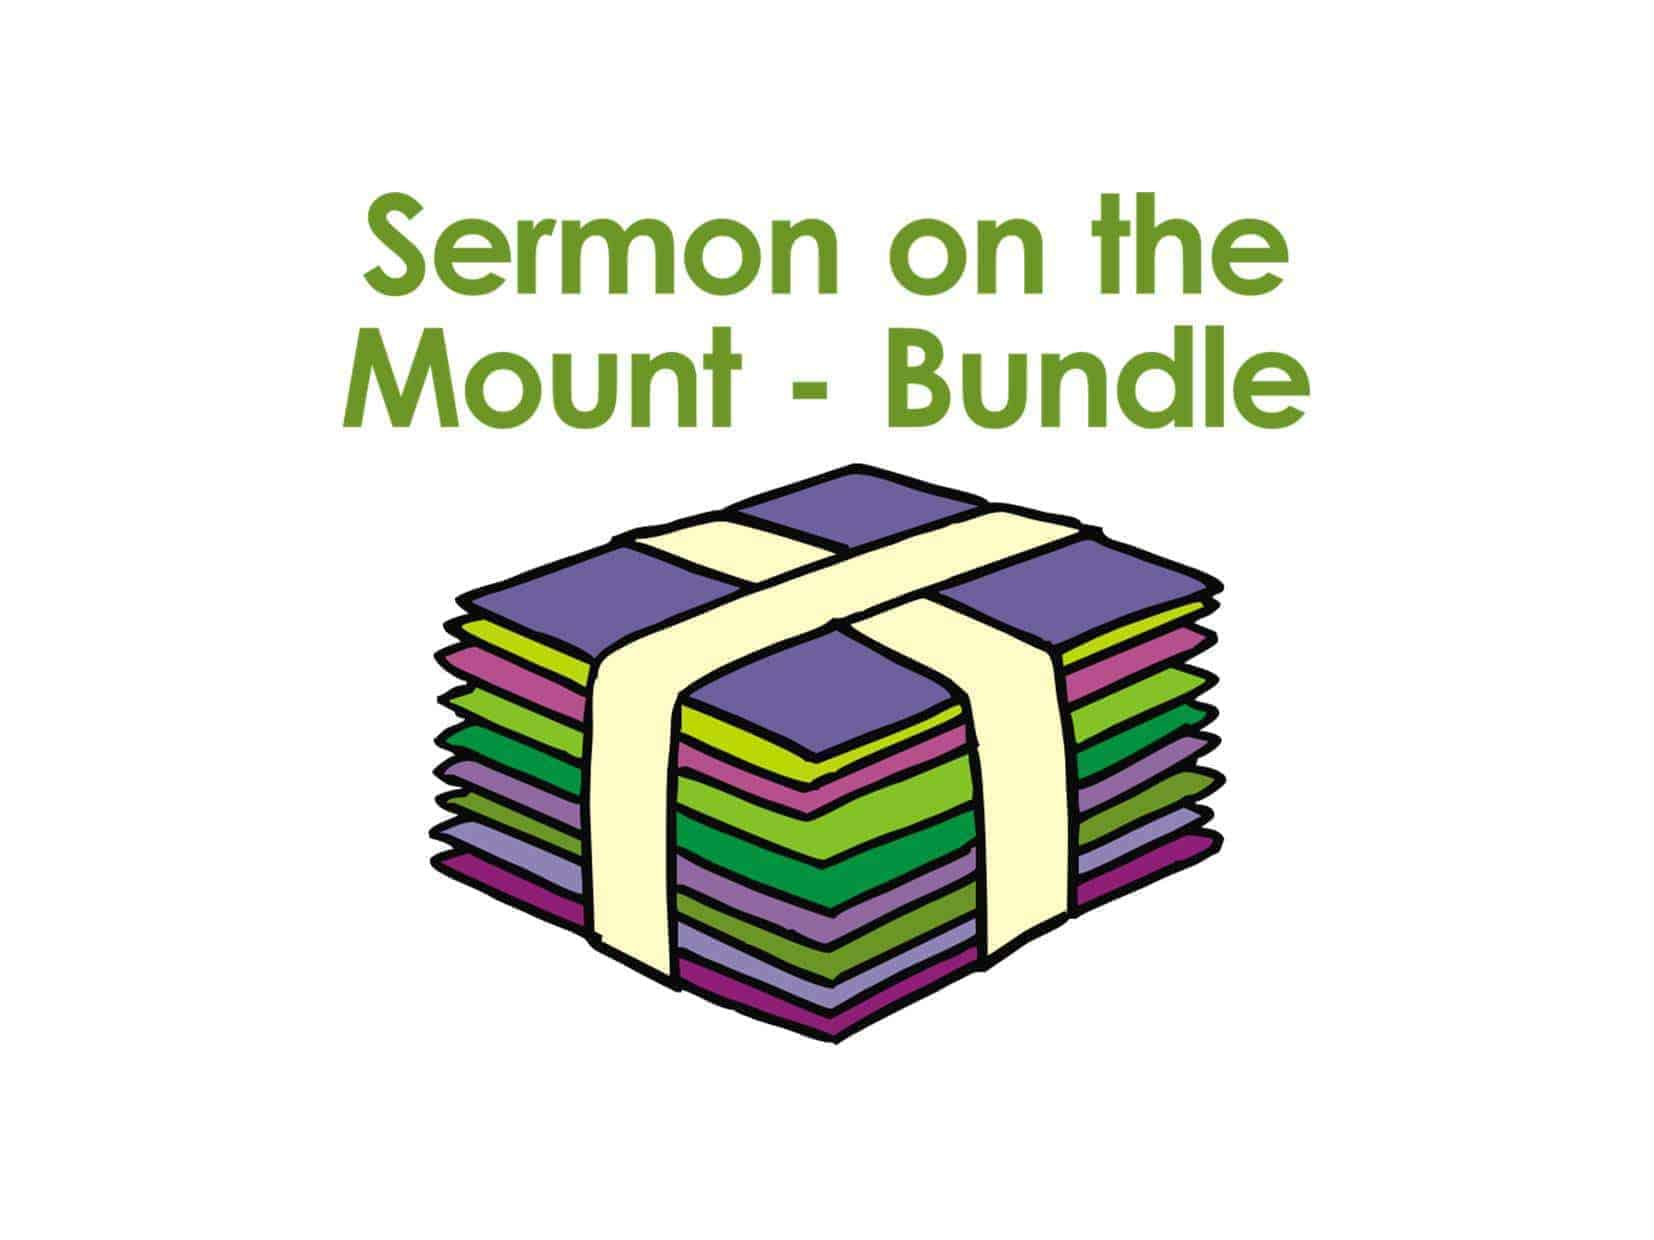 the sermon on the mount and The sermon on the mount is one of the most commented upon and interpreted  biblical passages, yet in a real sense gandhi's interpretation of it represents a.